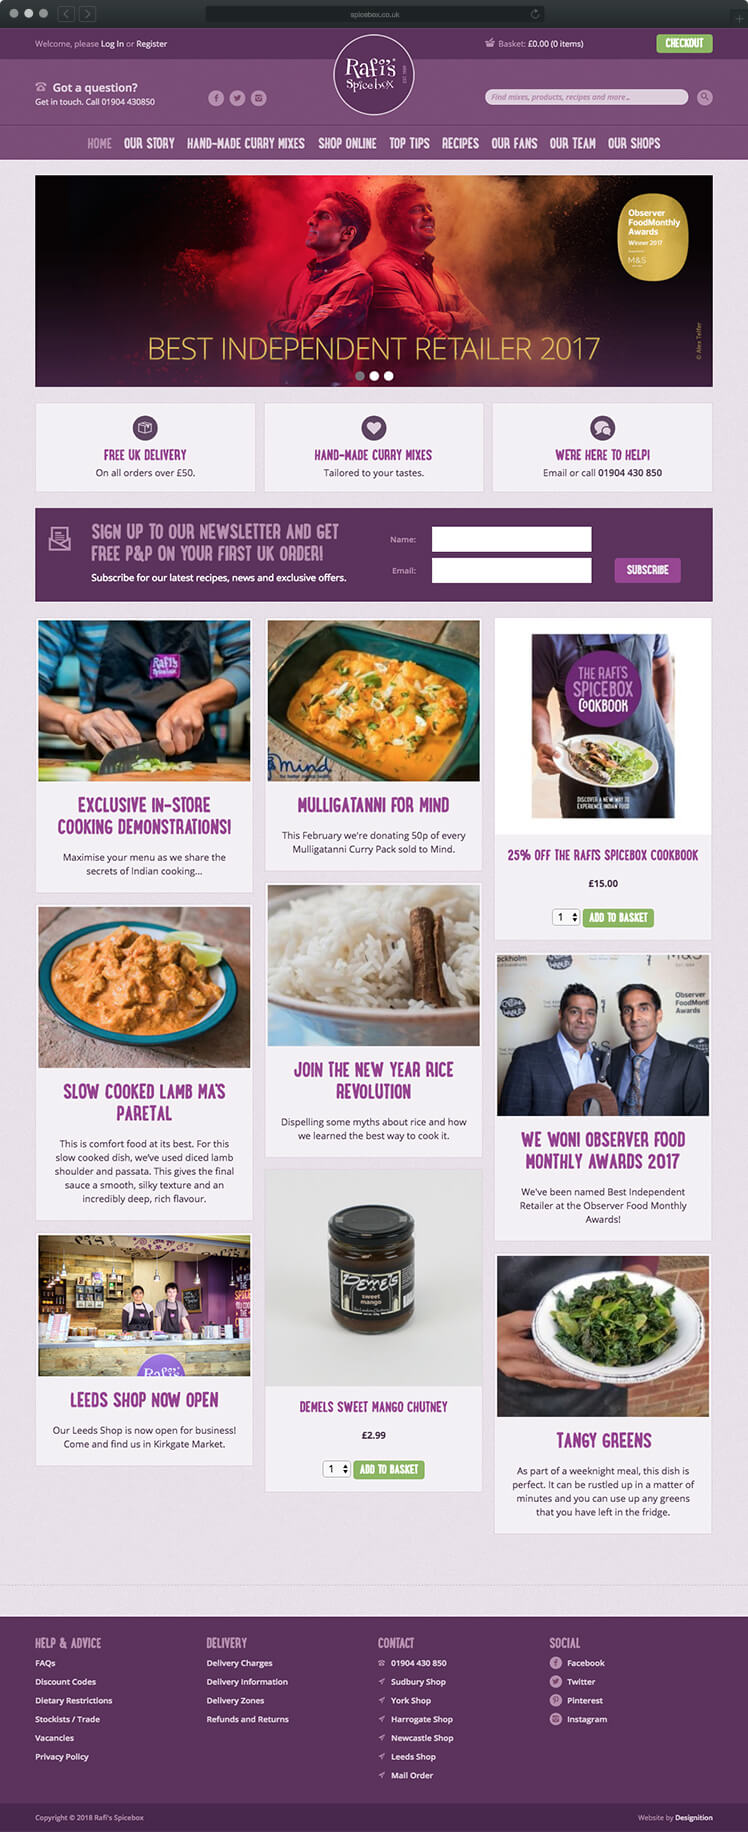 Rafi's Spice Box - Website design